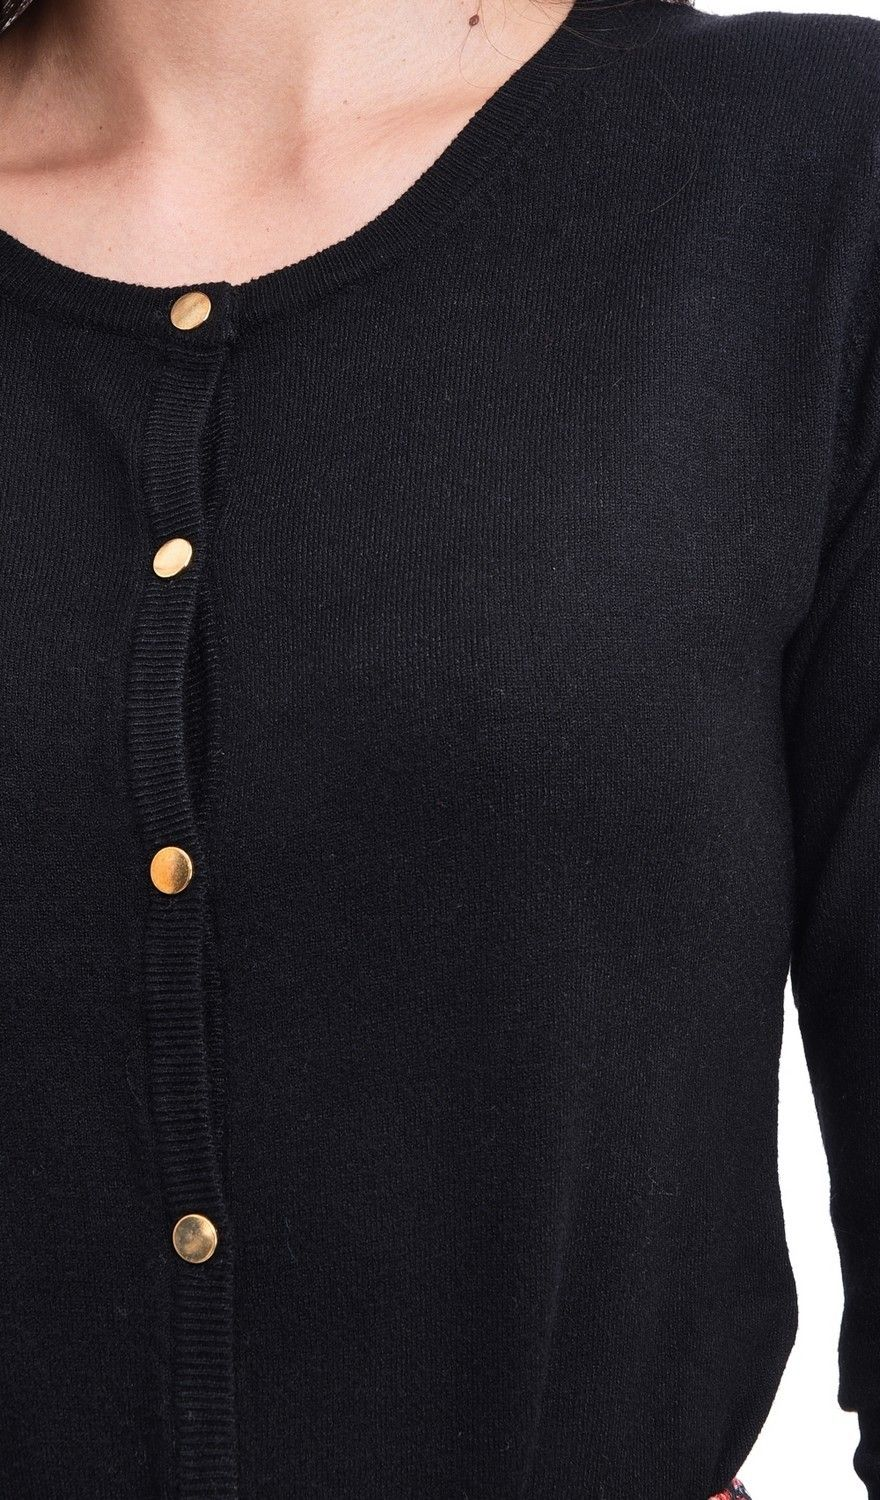 Assuili Round Neck Cardigan with Gold Buttons in Black